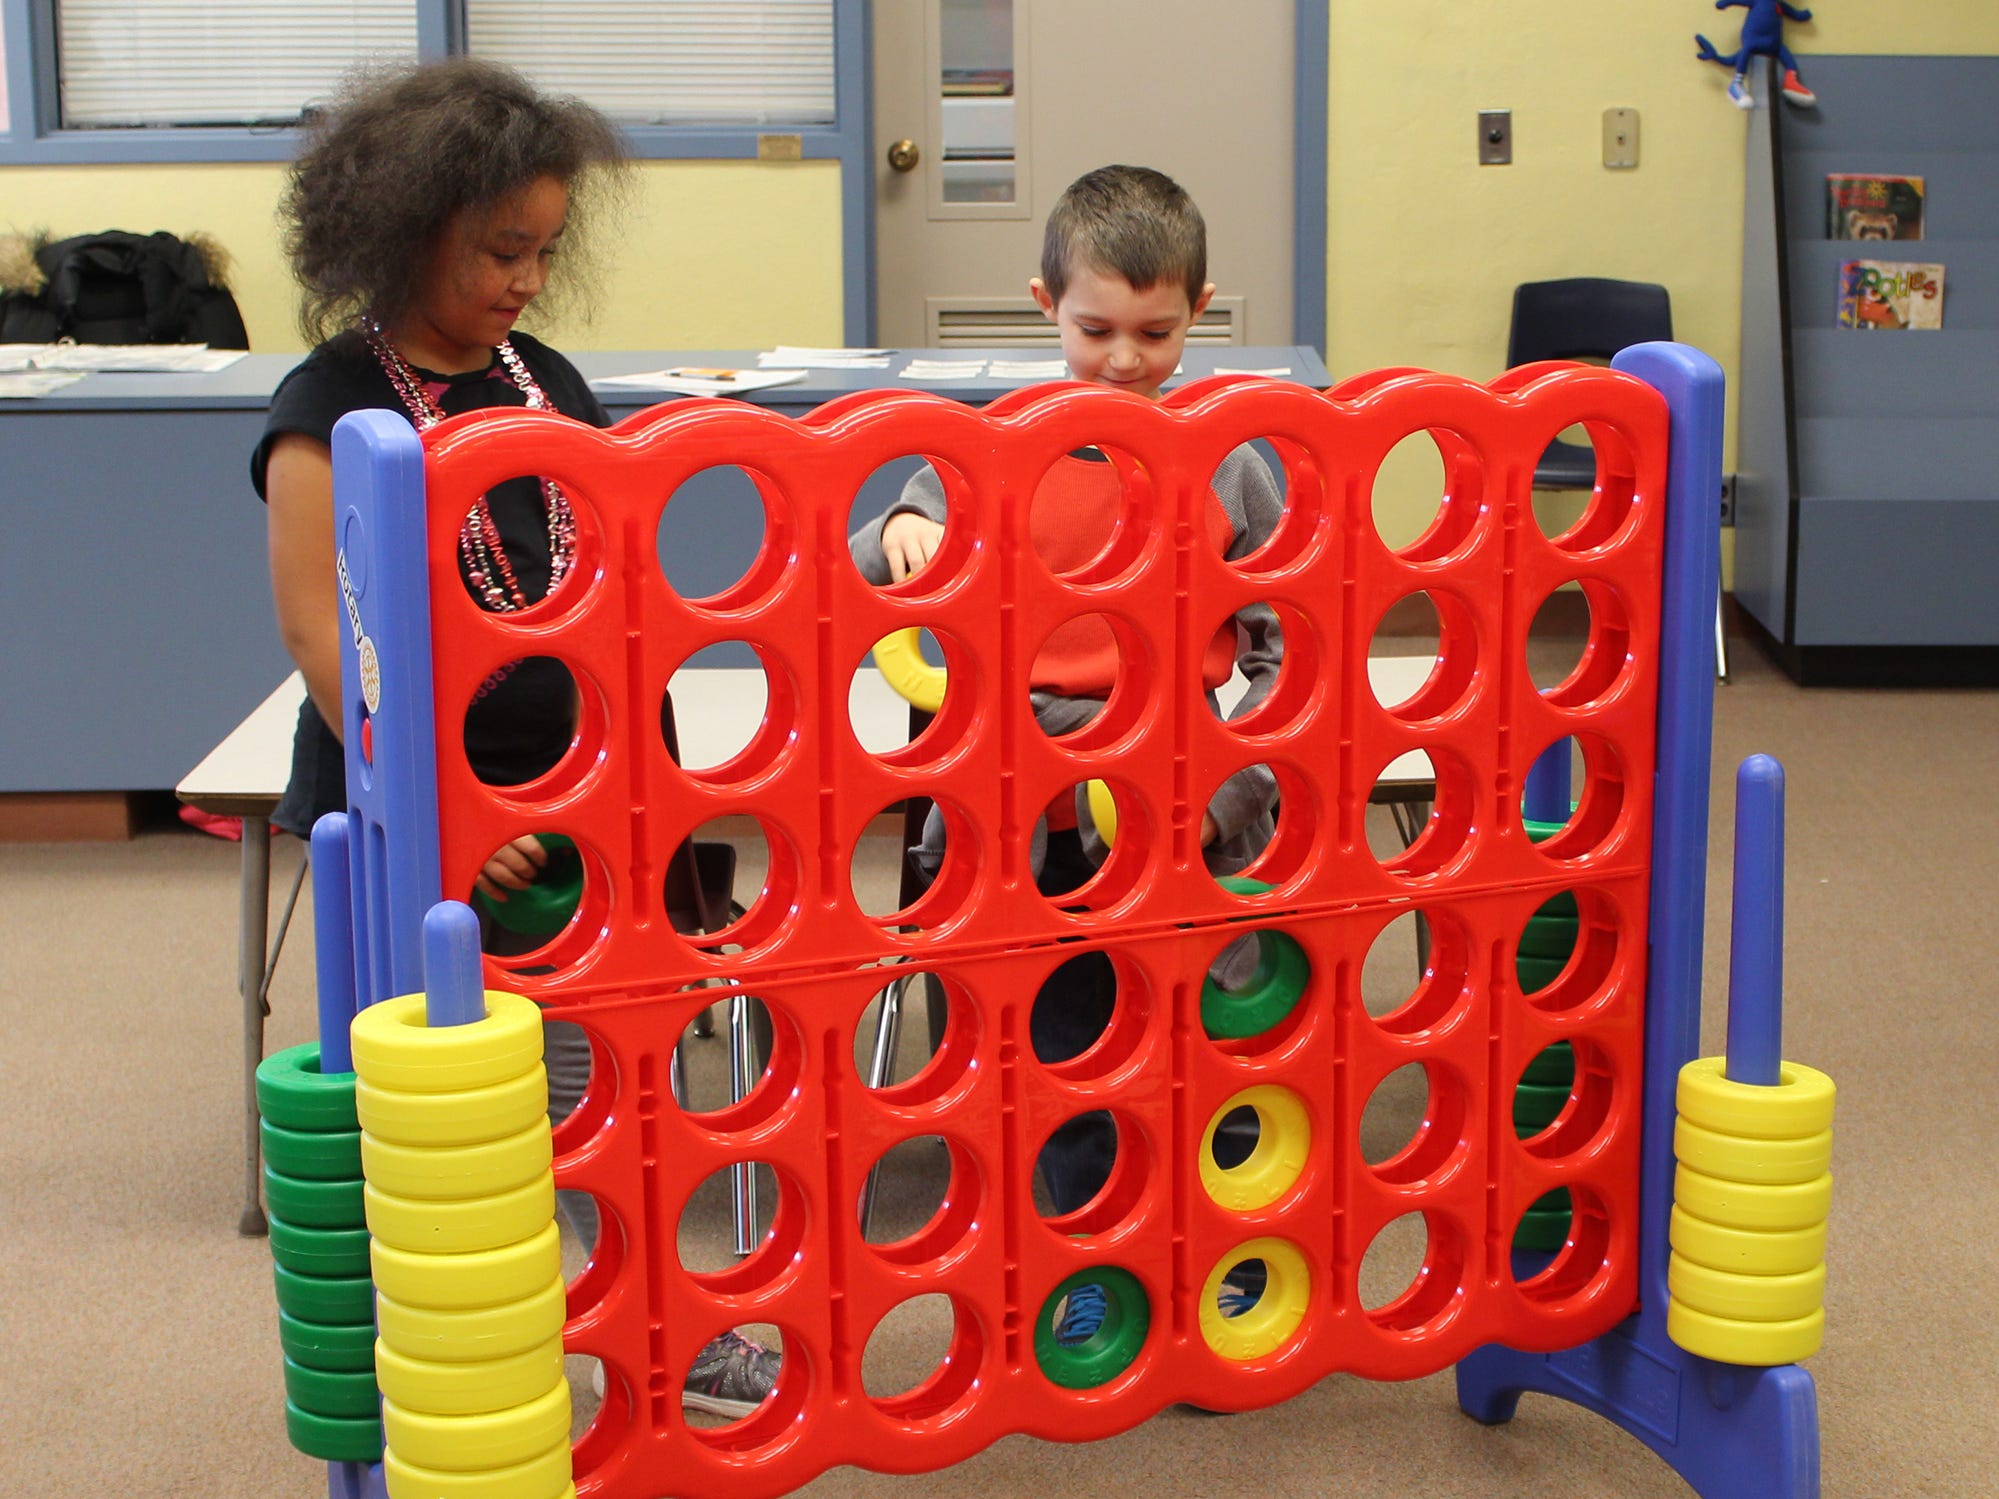 Members of the Rotary Club of Red Lion - Dallastown recently delivered and assembled several pieces of play equipment to the students of the Windsor Manor Elementary School in the Red Lion Area School District. Students Jelena Jones (left) and Dakota Pipher try out the Connect 4 game. The club used club-generated funds from various fundraising activities and funds from a Rotary District Grant to purchase the items. submitted